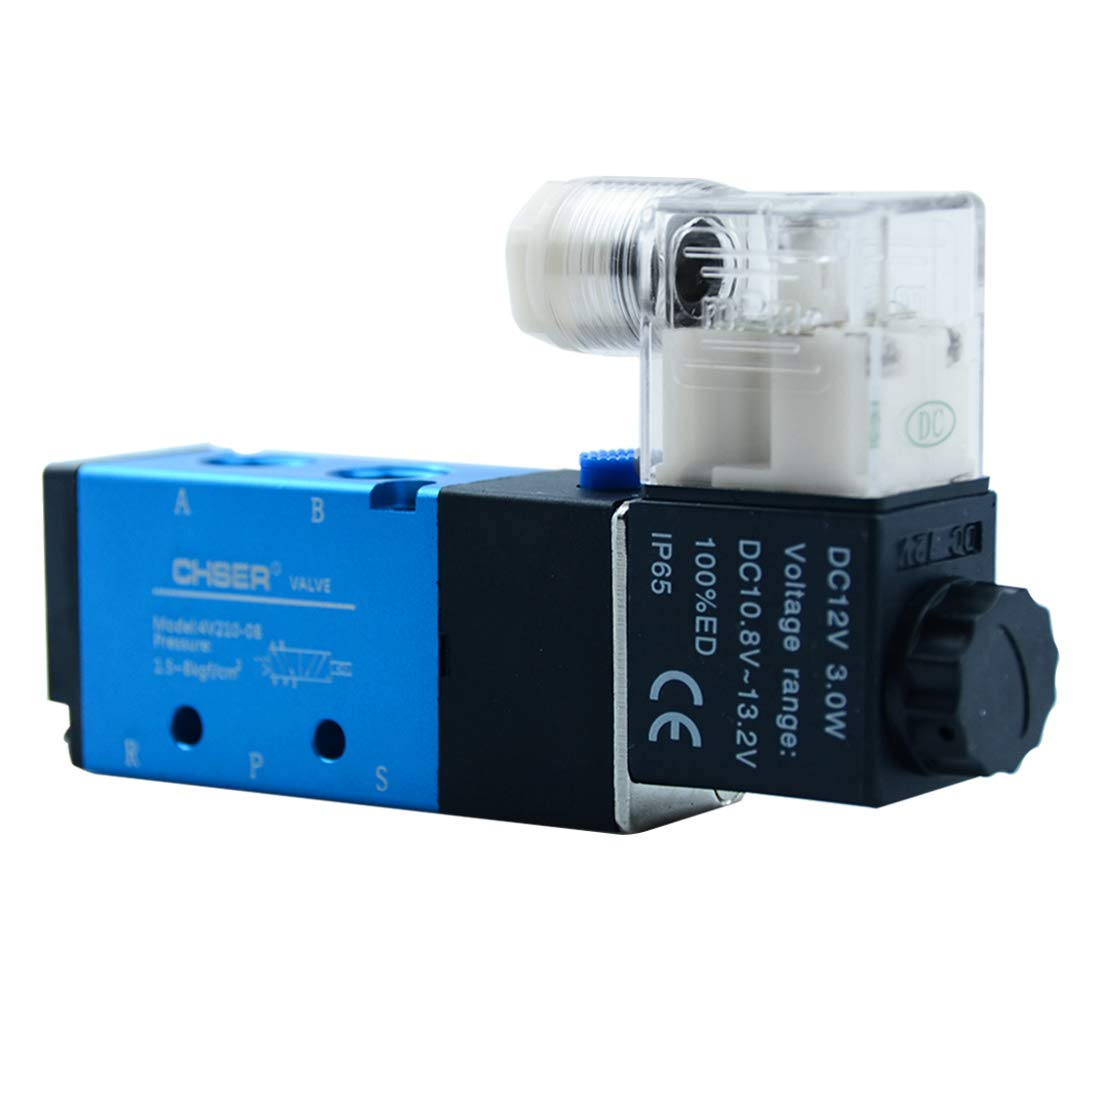 Quickun DC 12V 1/4'' Solenoid Valve 5 Way 2 Position Inlet Single Coil Pneumatic Air Control Electric Valve 4V210-08 by Quickun